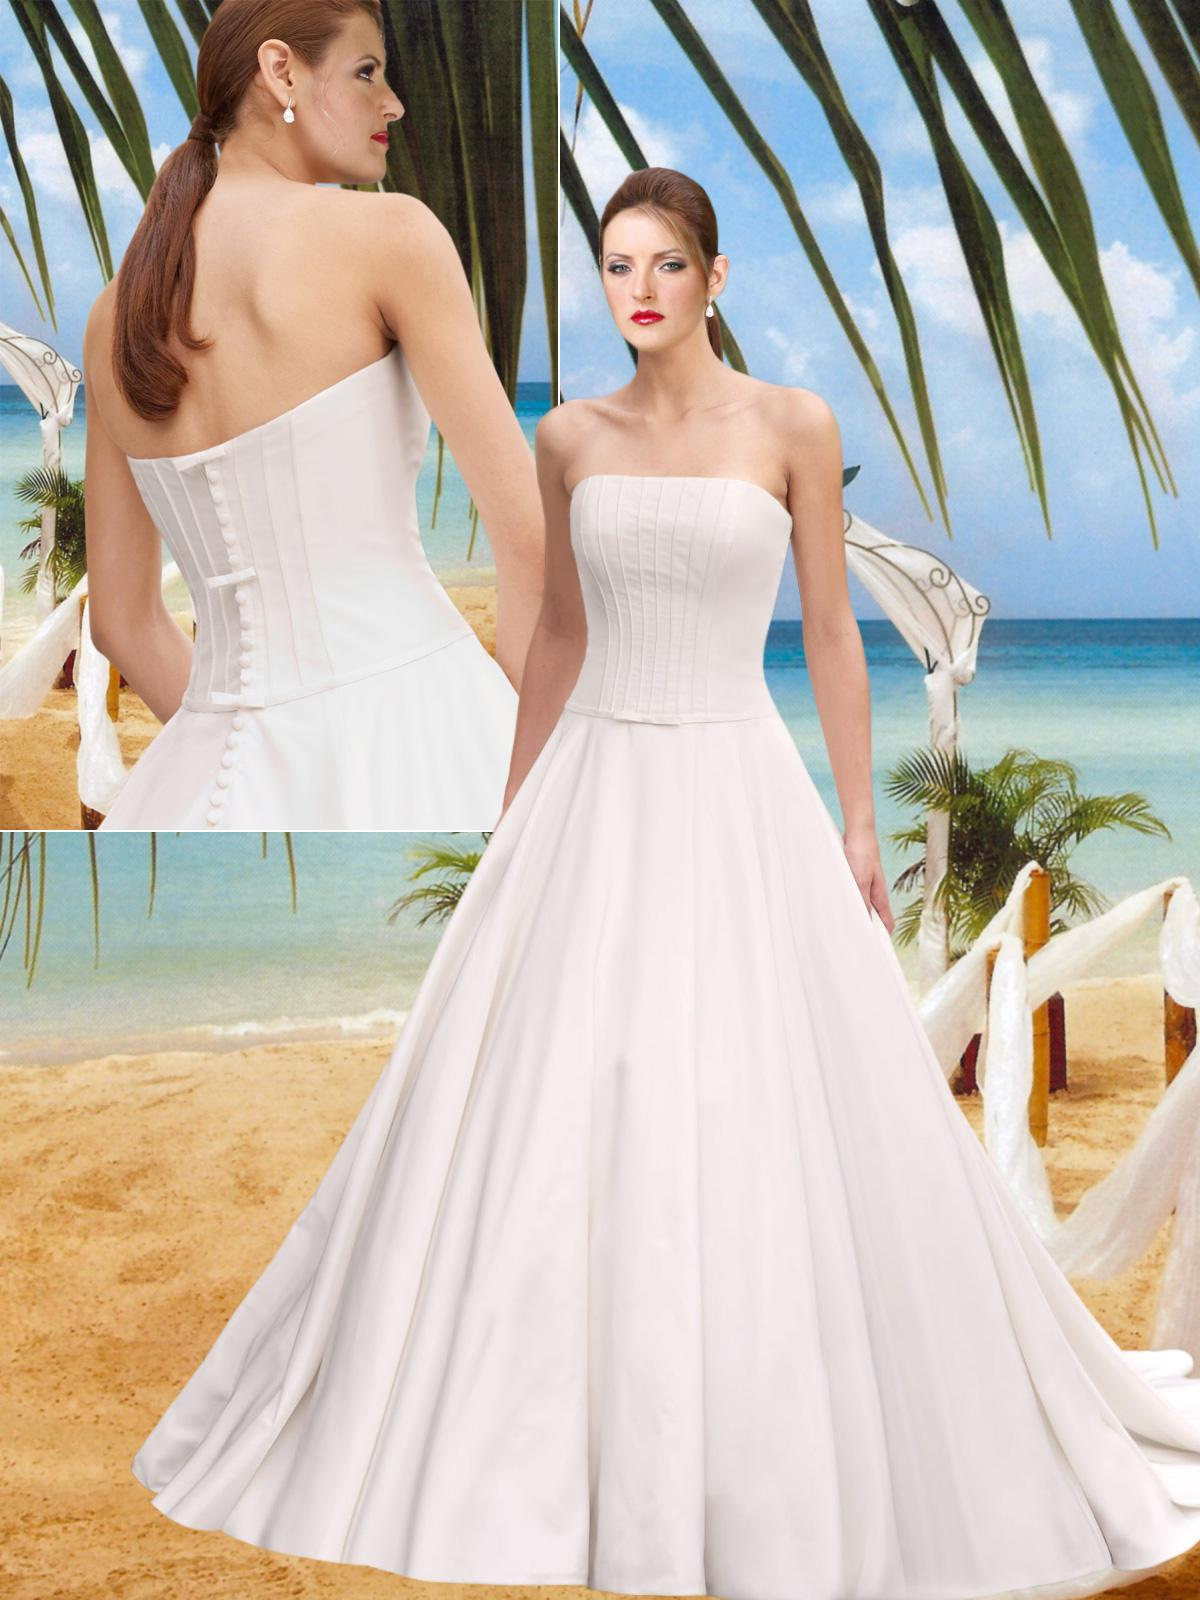 Wholesale Modest Wedding Dresses.html- China Wholesale Modest Wedding